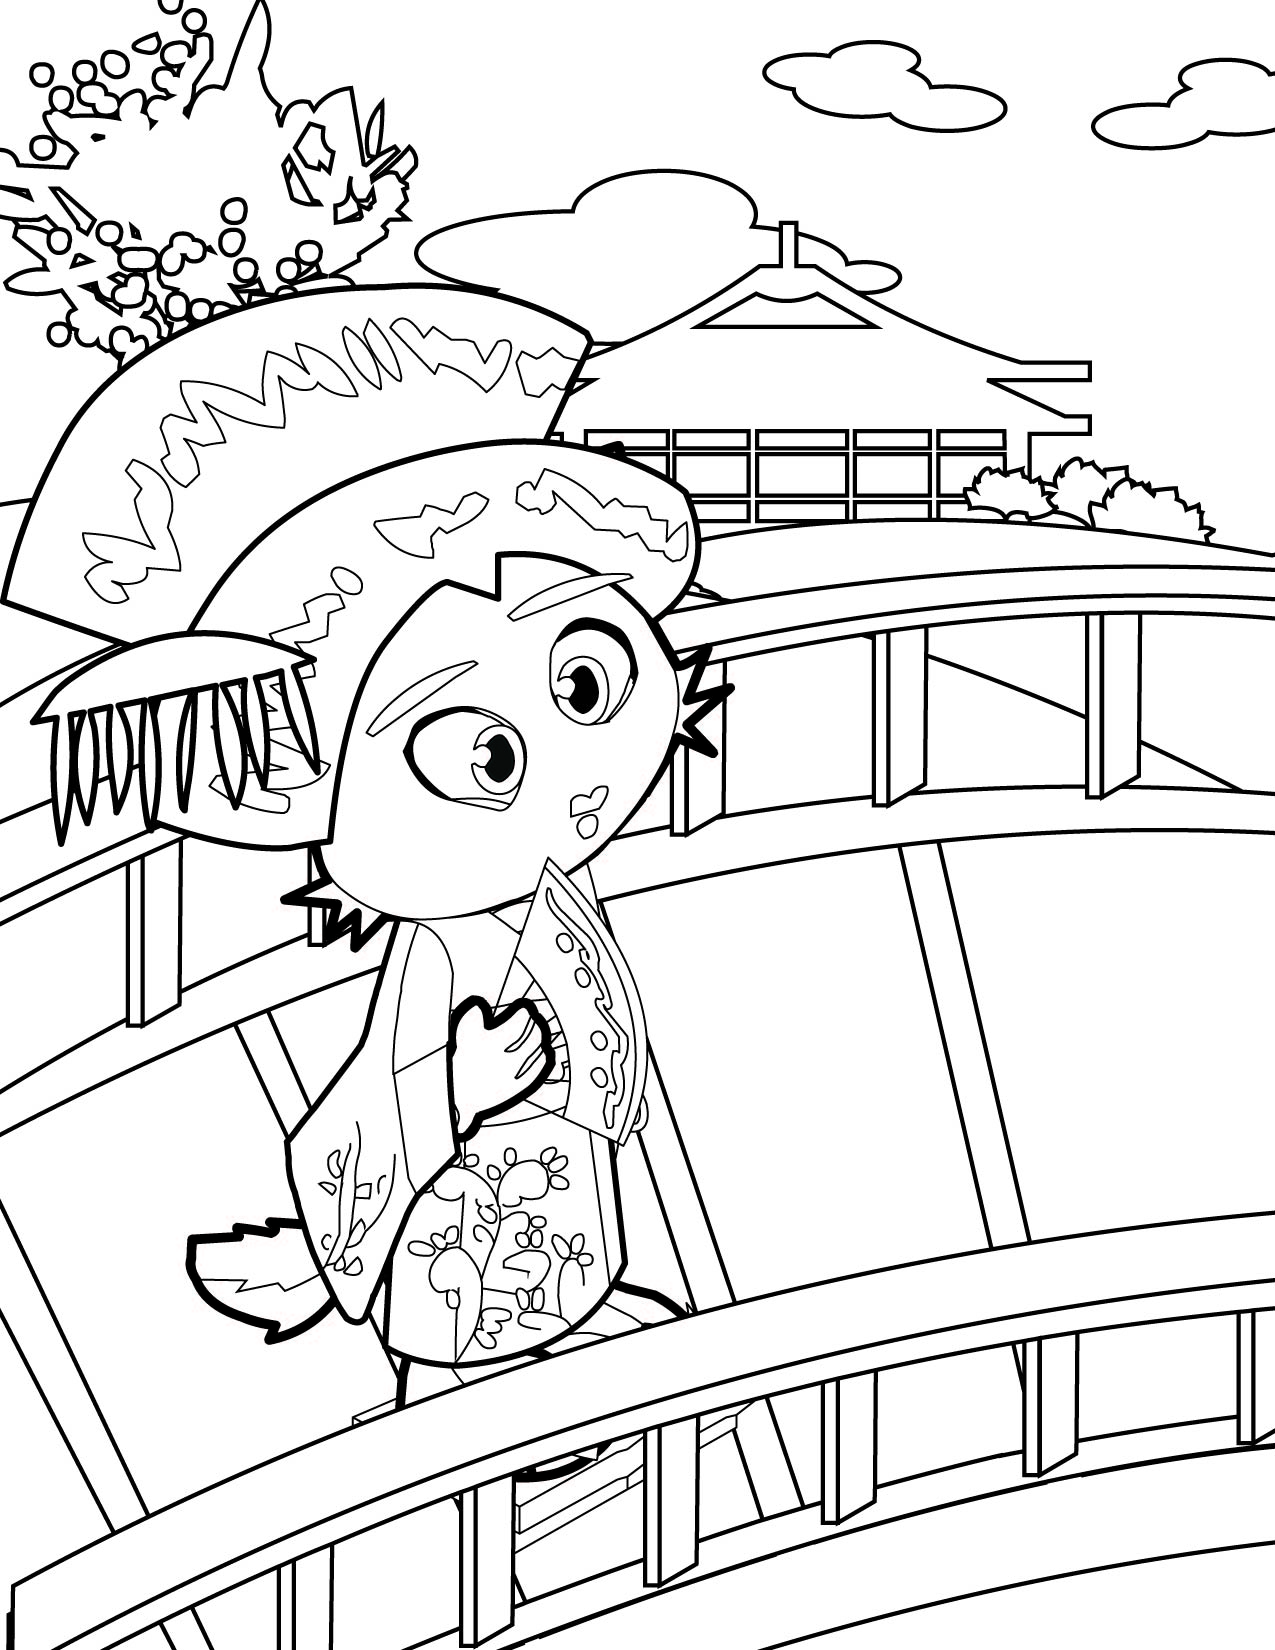 Uncategorized Geisha Coloring Pages geisha coloring page handipoints geisha